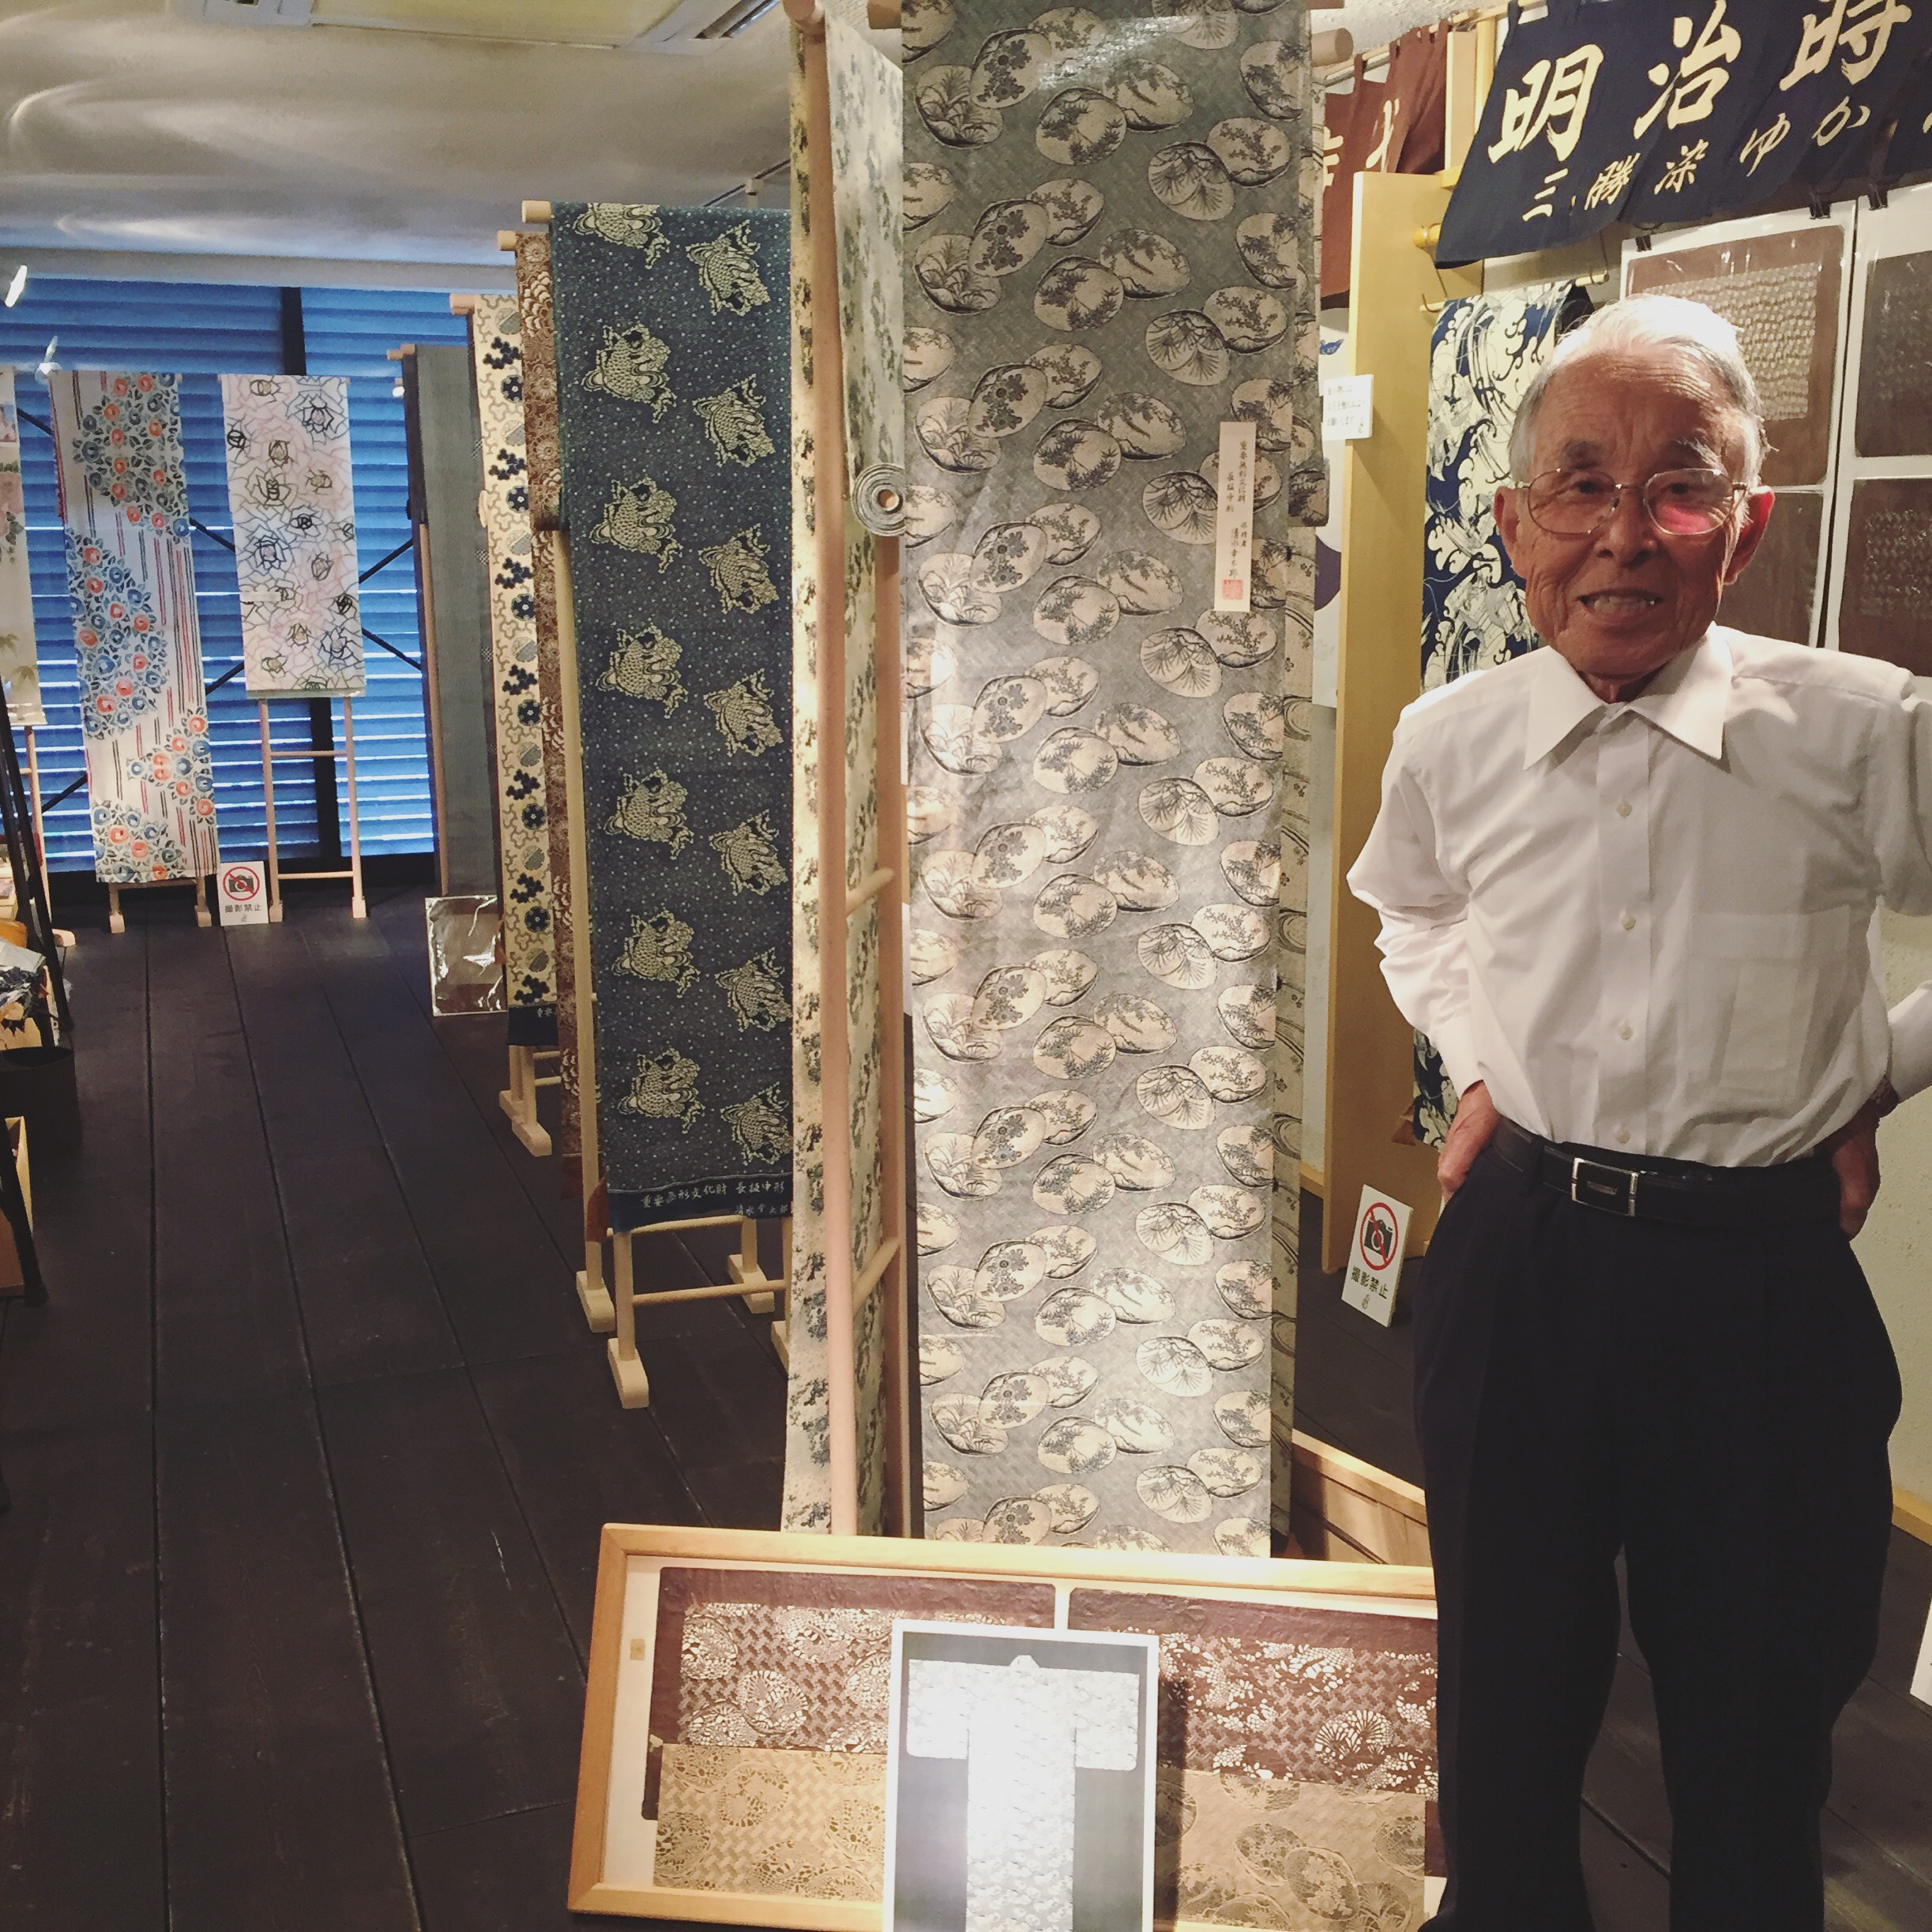 Mr. Shimizu next to his father's hand-dyed yukata textile at the Yukata Museum.